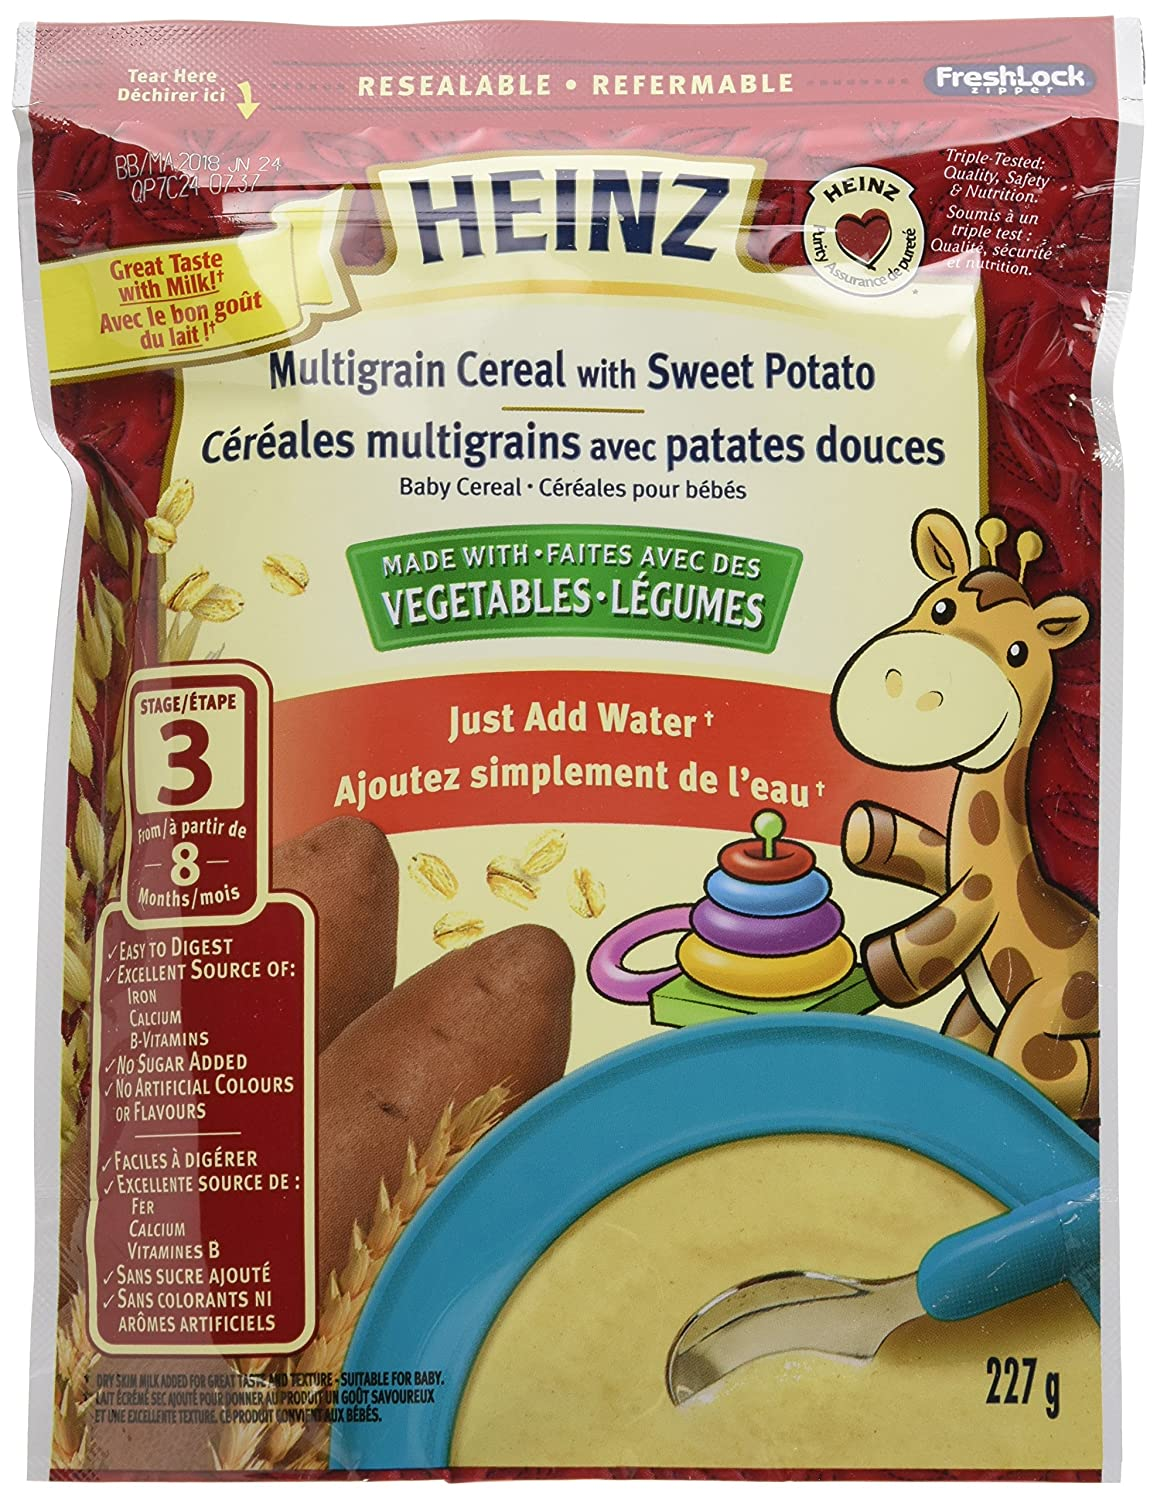 HEINZ Multigrain Cereal with Mango, Pineapple & Pear, 6 Pack, 227G Each Kraft Heinz Canada ULC